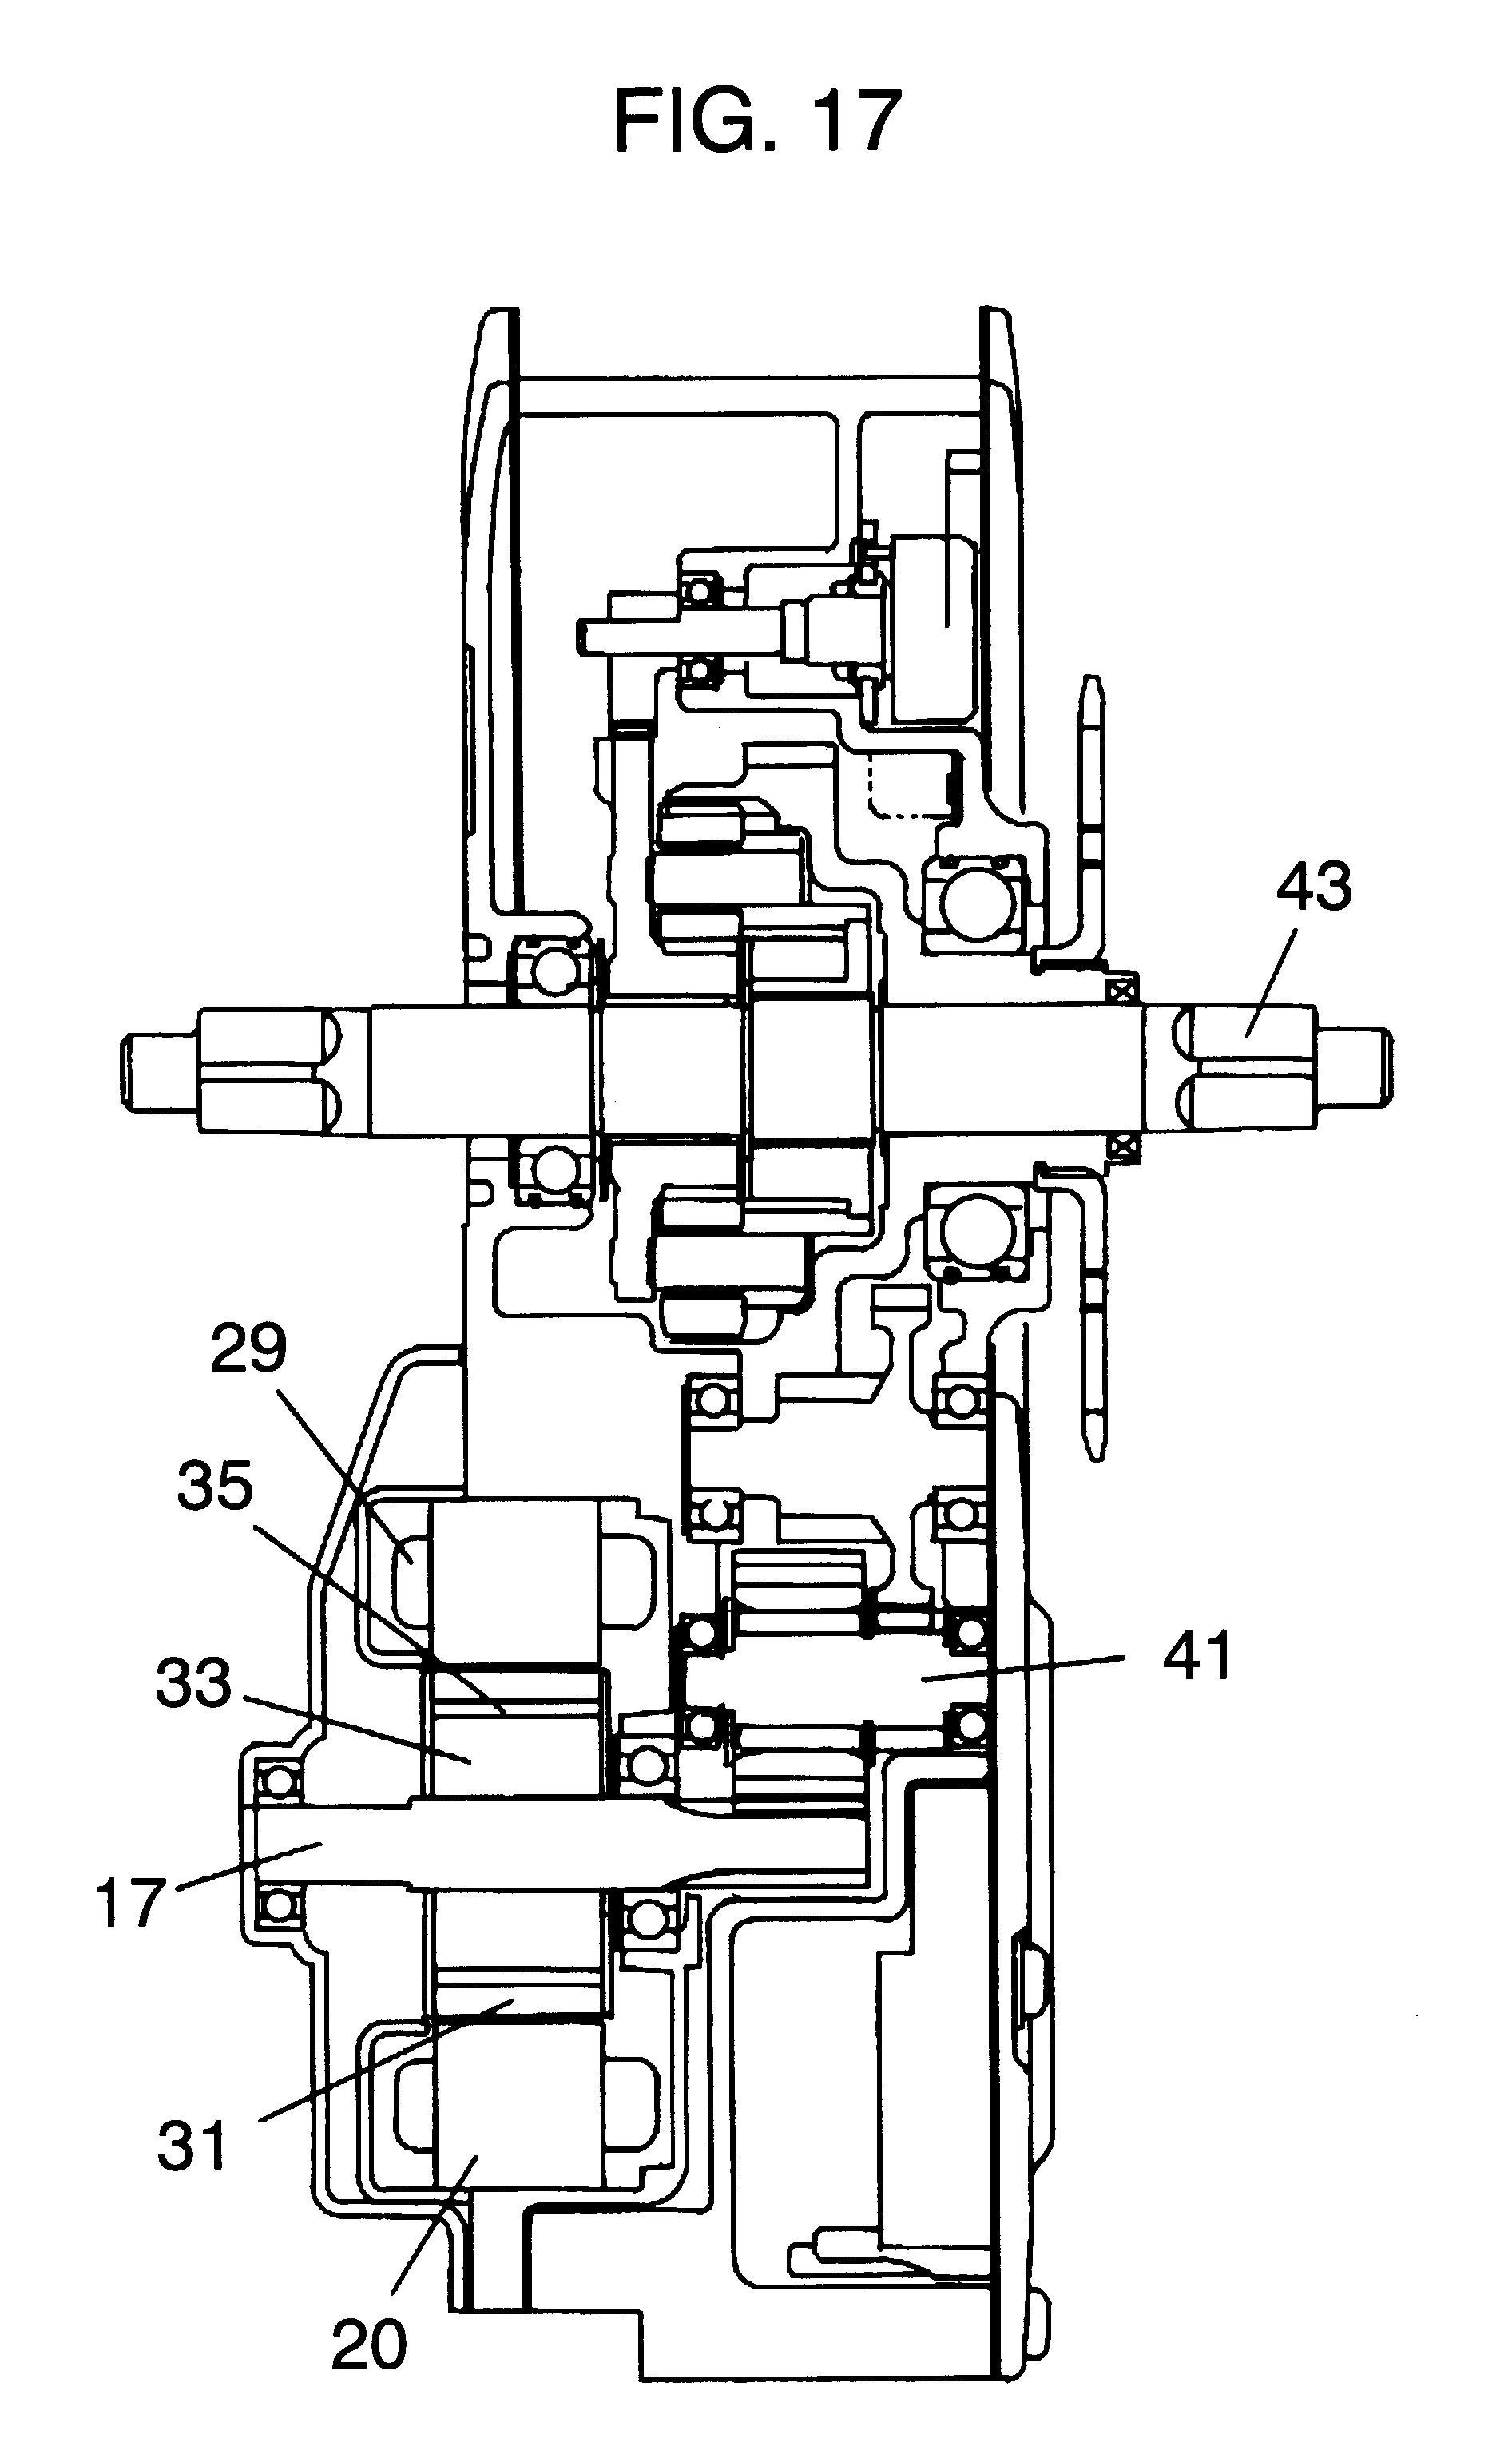 Patent Us6218753 Motor Using Rotor Including Interior Permanent Magnet And Apparatus Driving